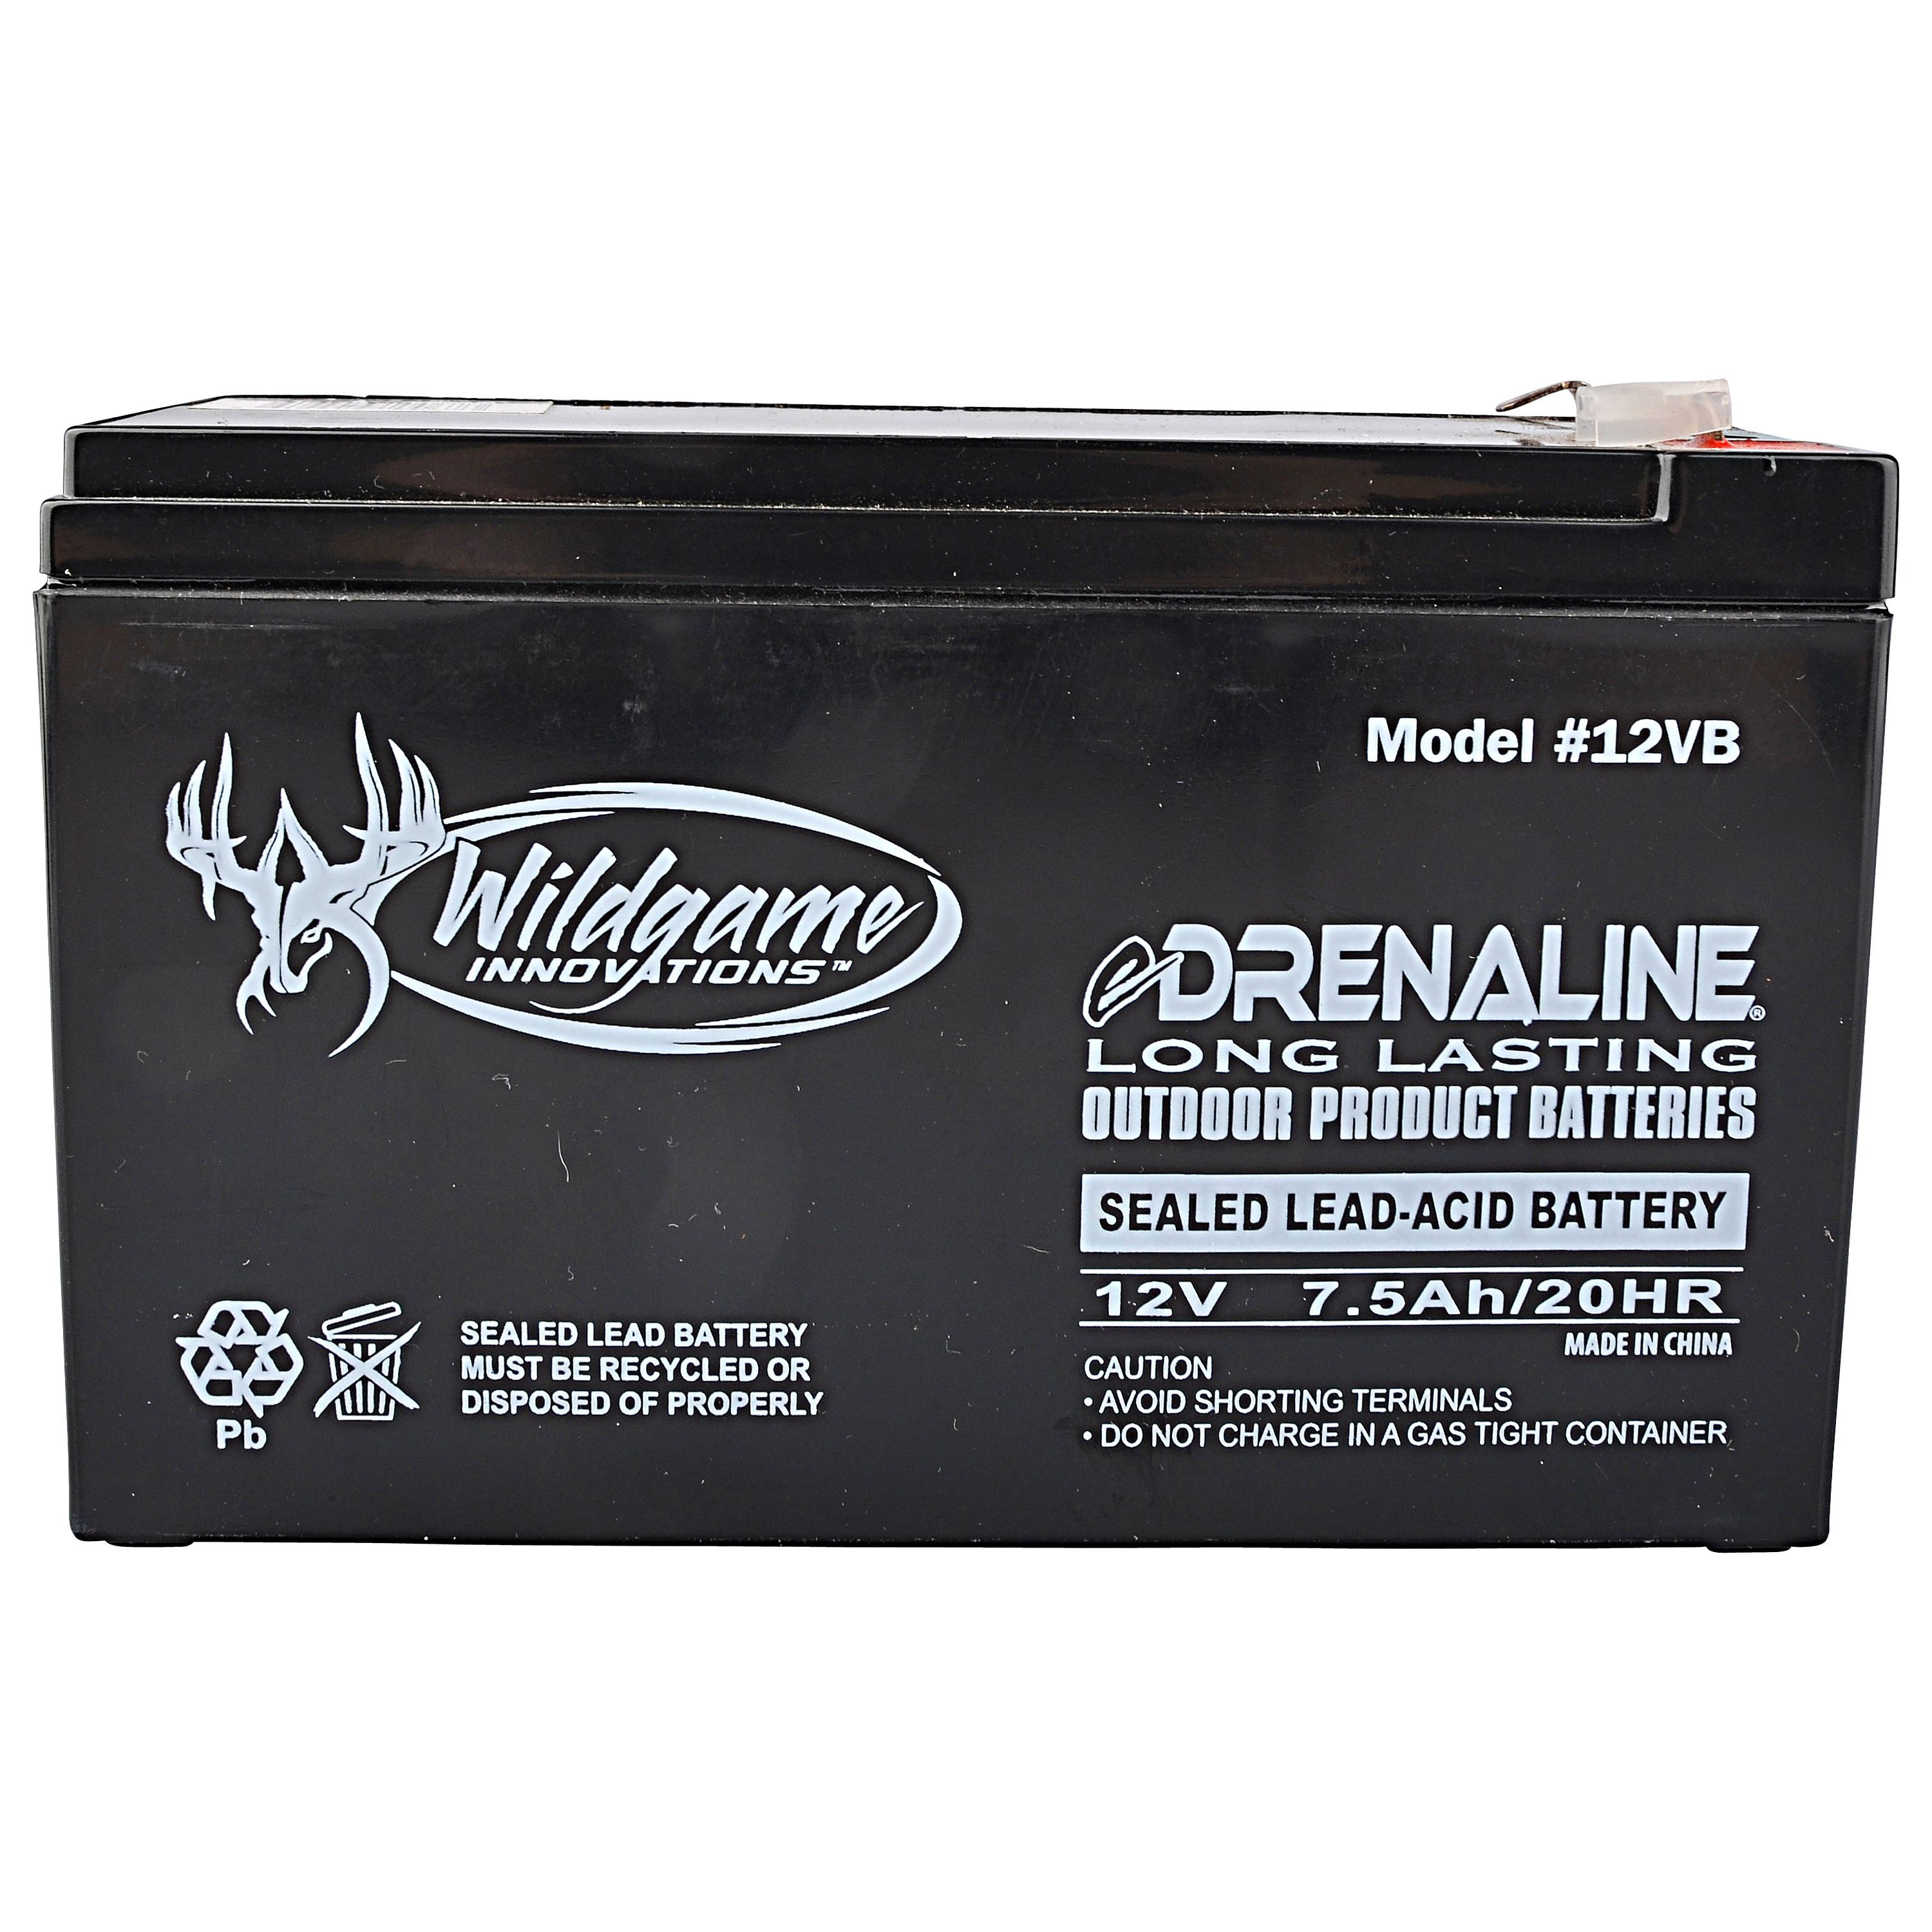 Wildgame Innovations eDrenaline 12 V Sealed Lead Acid Battery